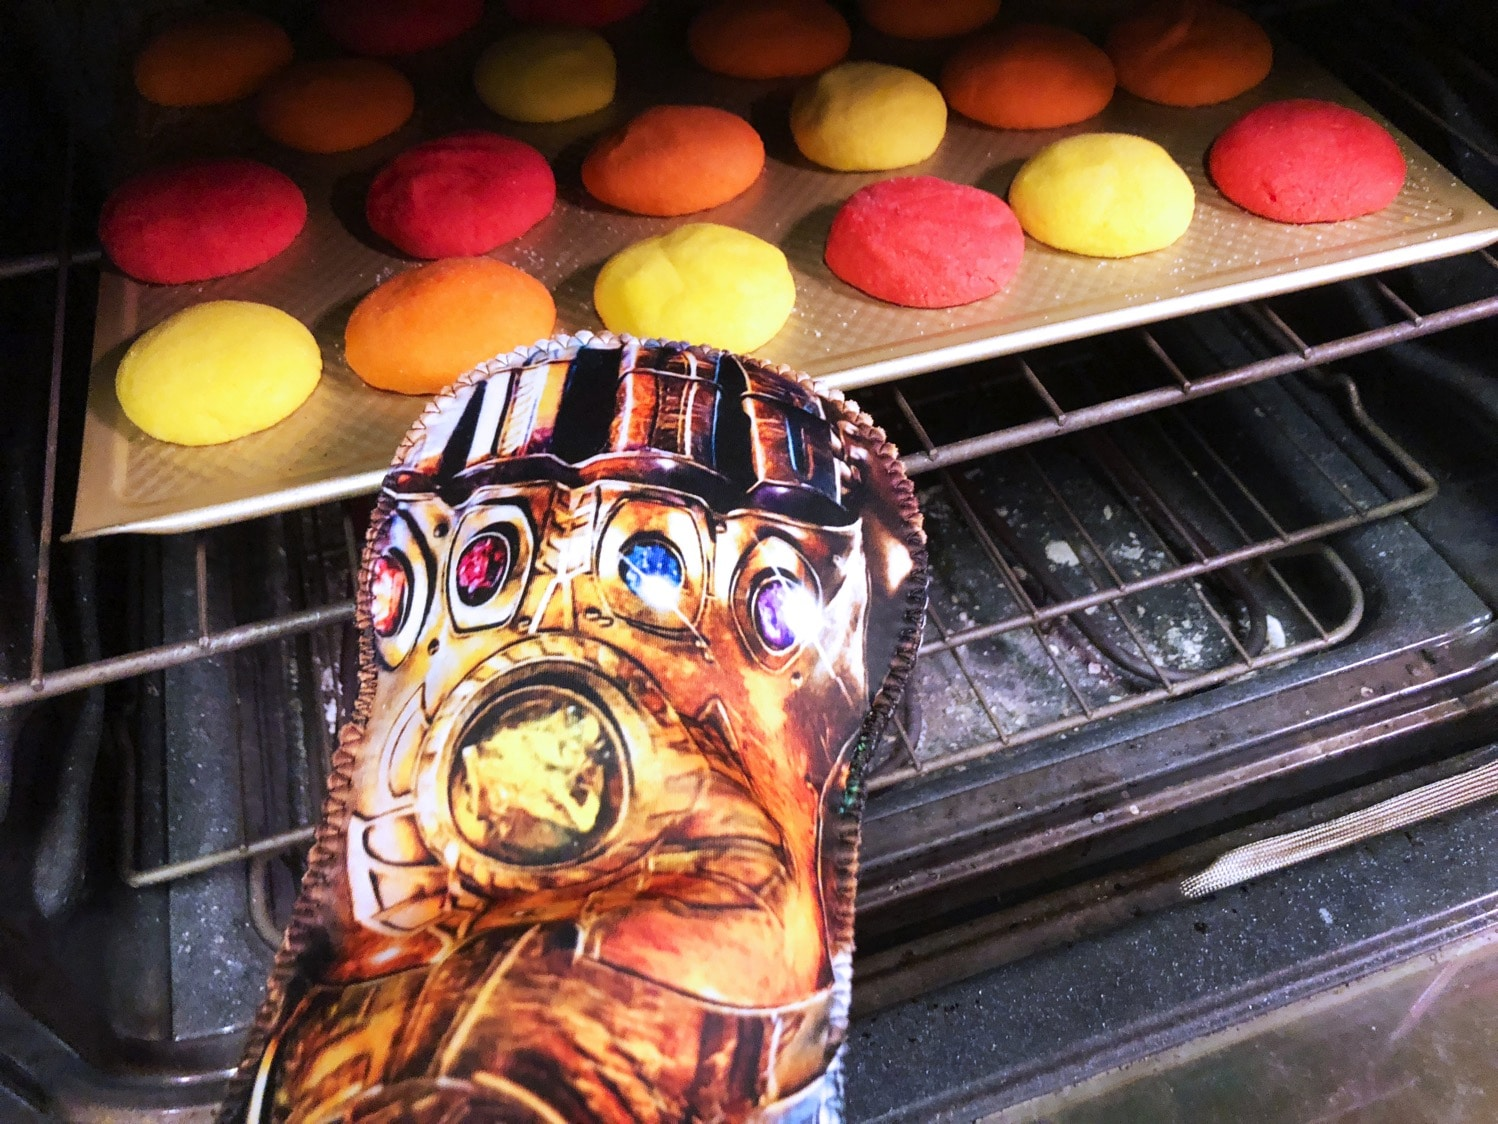 removing infinity stone cookies from the oven